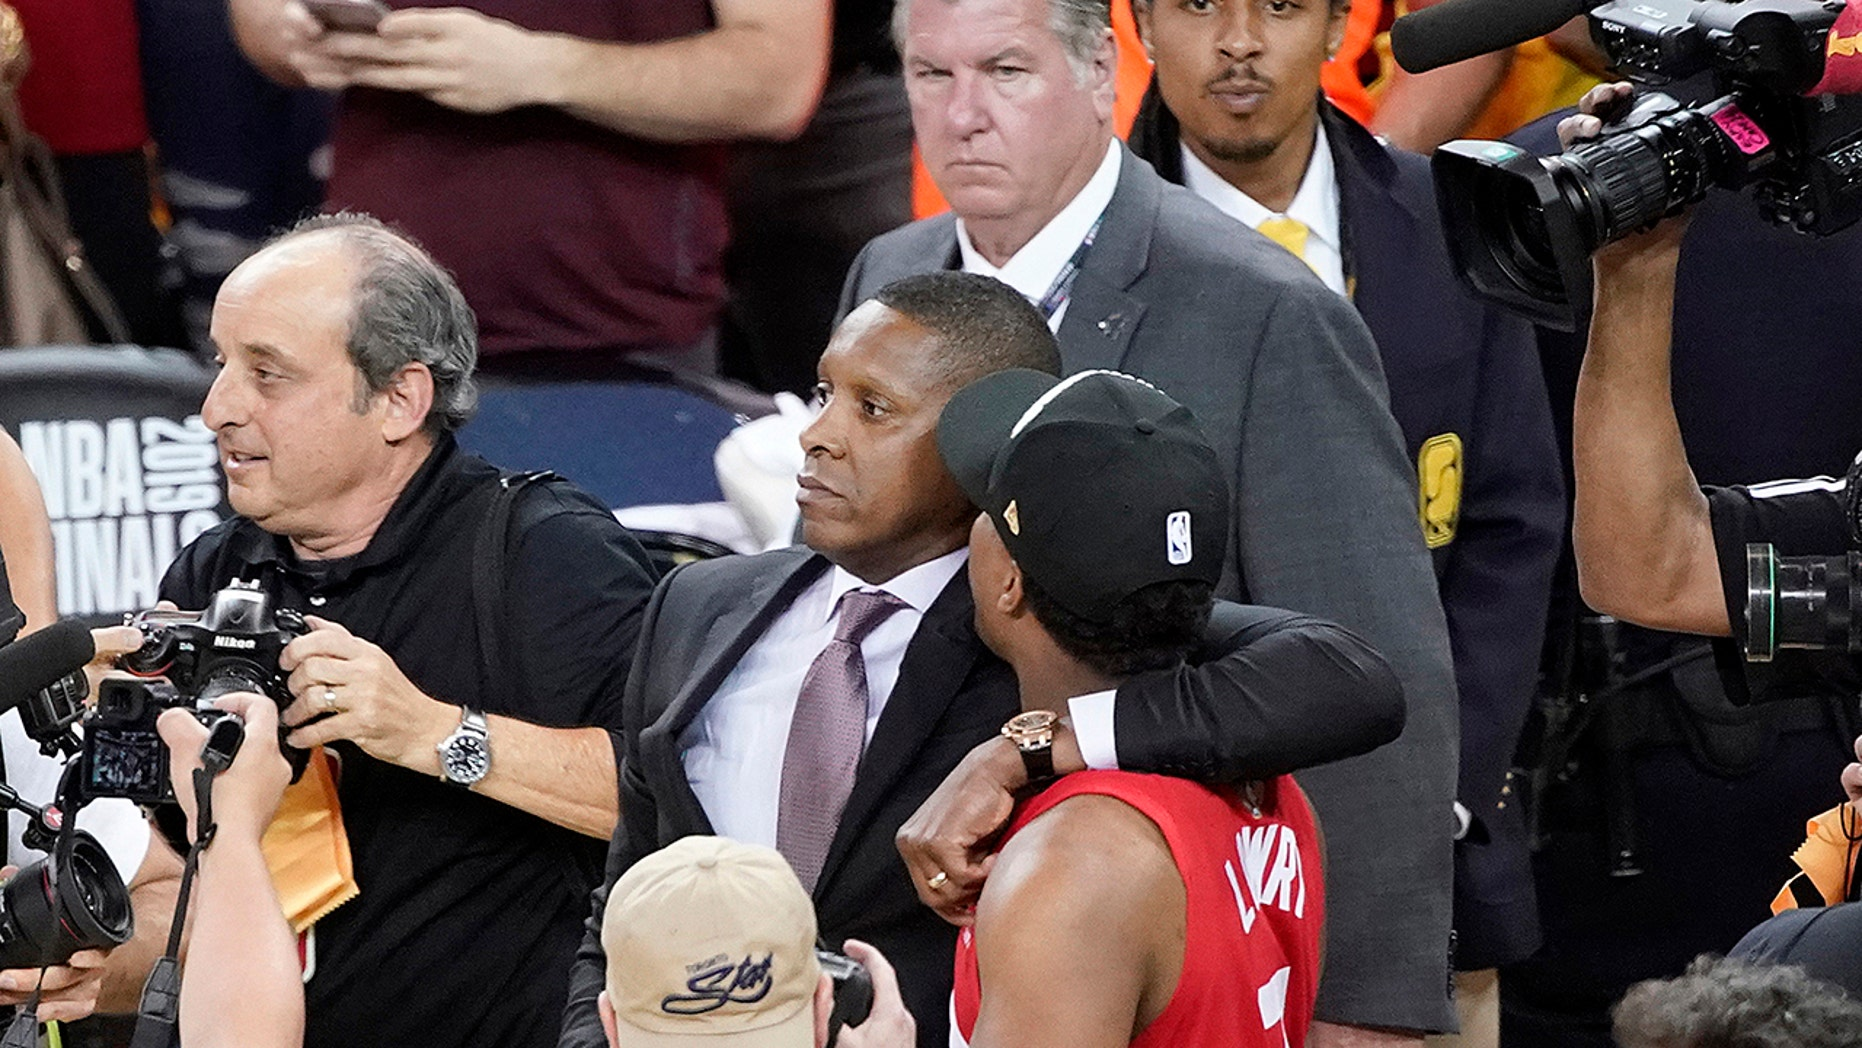 FILE - In this June 13, 2019, file photo, Toronto Raptors President Masai Ujiri, center left, walks with his arm around guard Kyle Lowry after the Raptors defeated the Golden State Warriors in basketball's NBA Finals in Oakland, Calif. On Tuesday, Oct. 22, 2019, the Alameda County District Attorney's Office announced no criminal charges will be filed against Ujiri for an incident involving Ujiri and an Alameda County sheriff's deputy after Game 6 of the finals. (AP Photo/Tony Avelar, File)